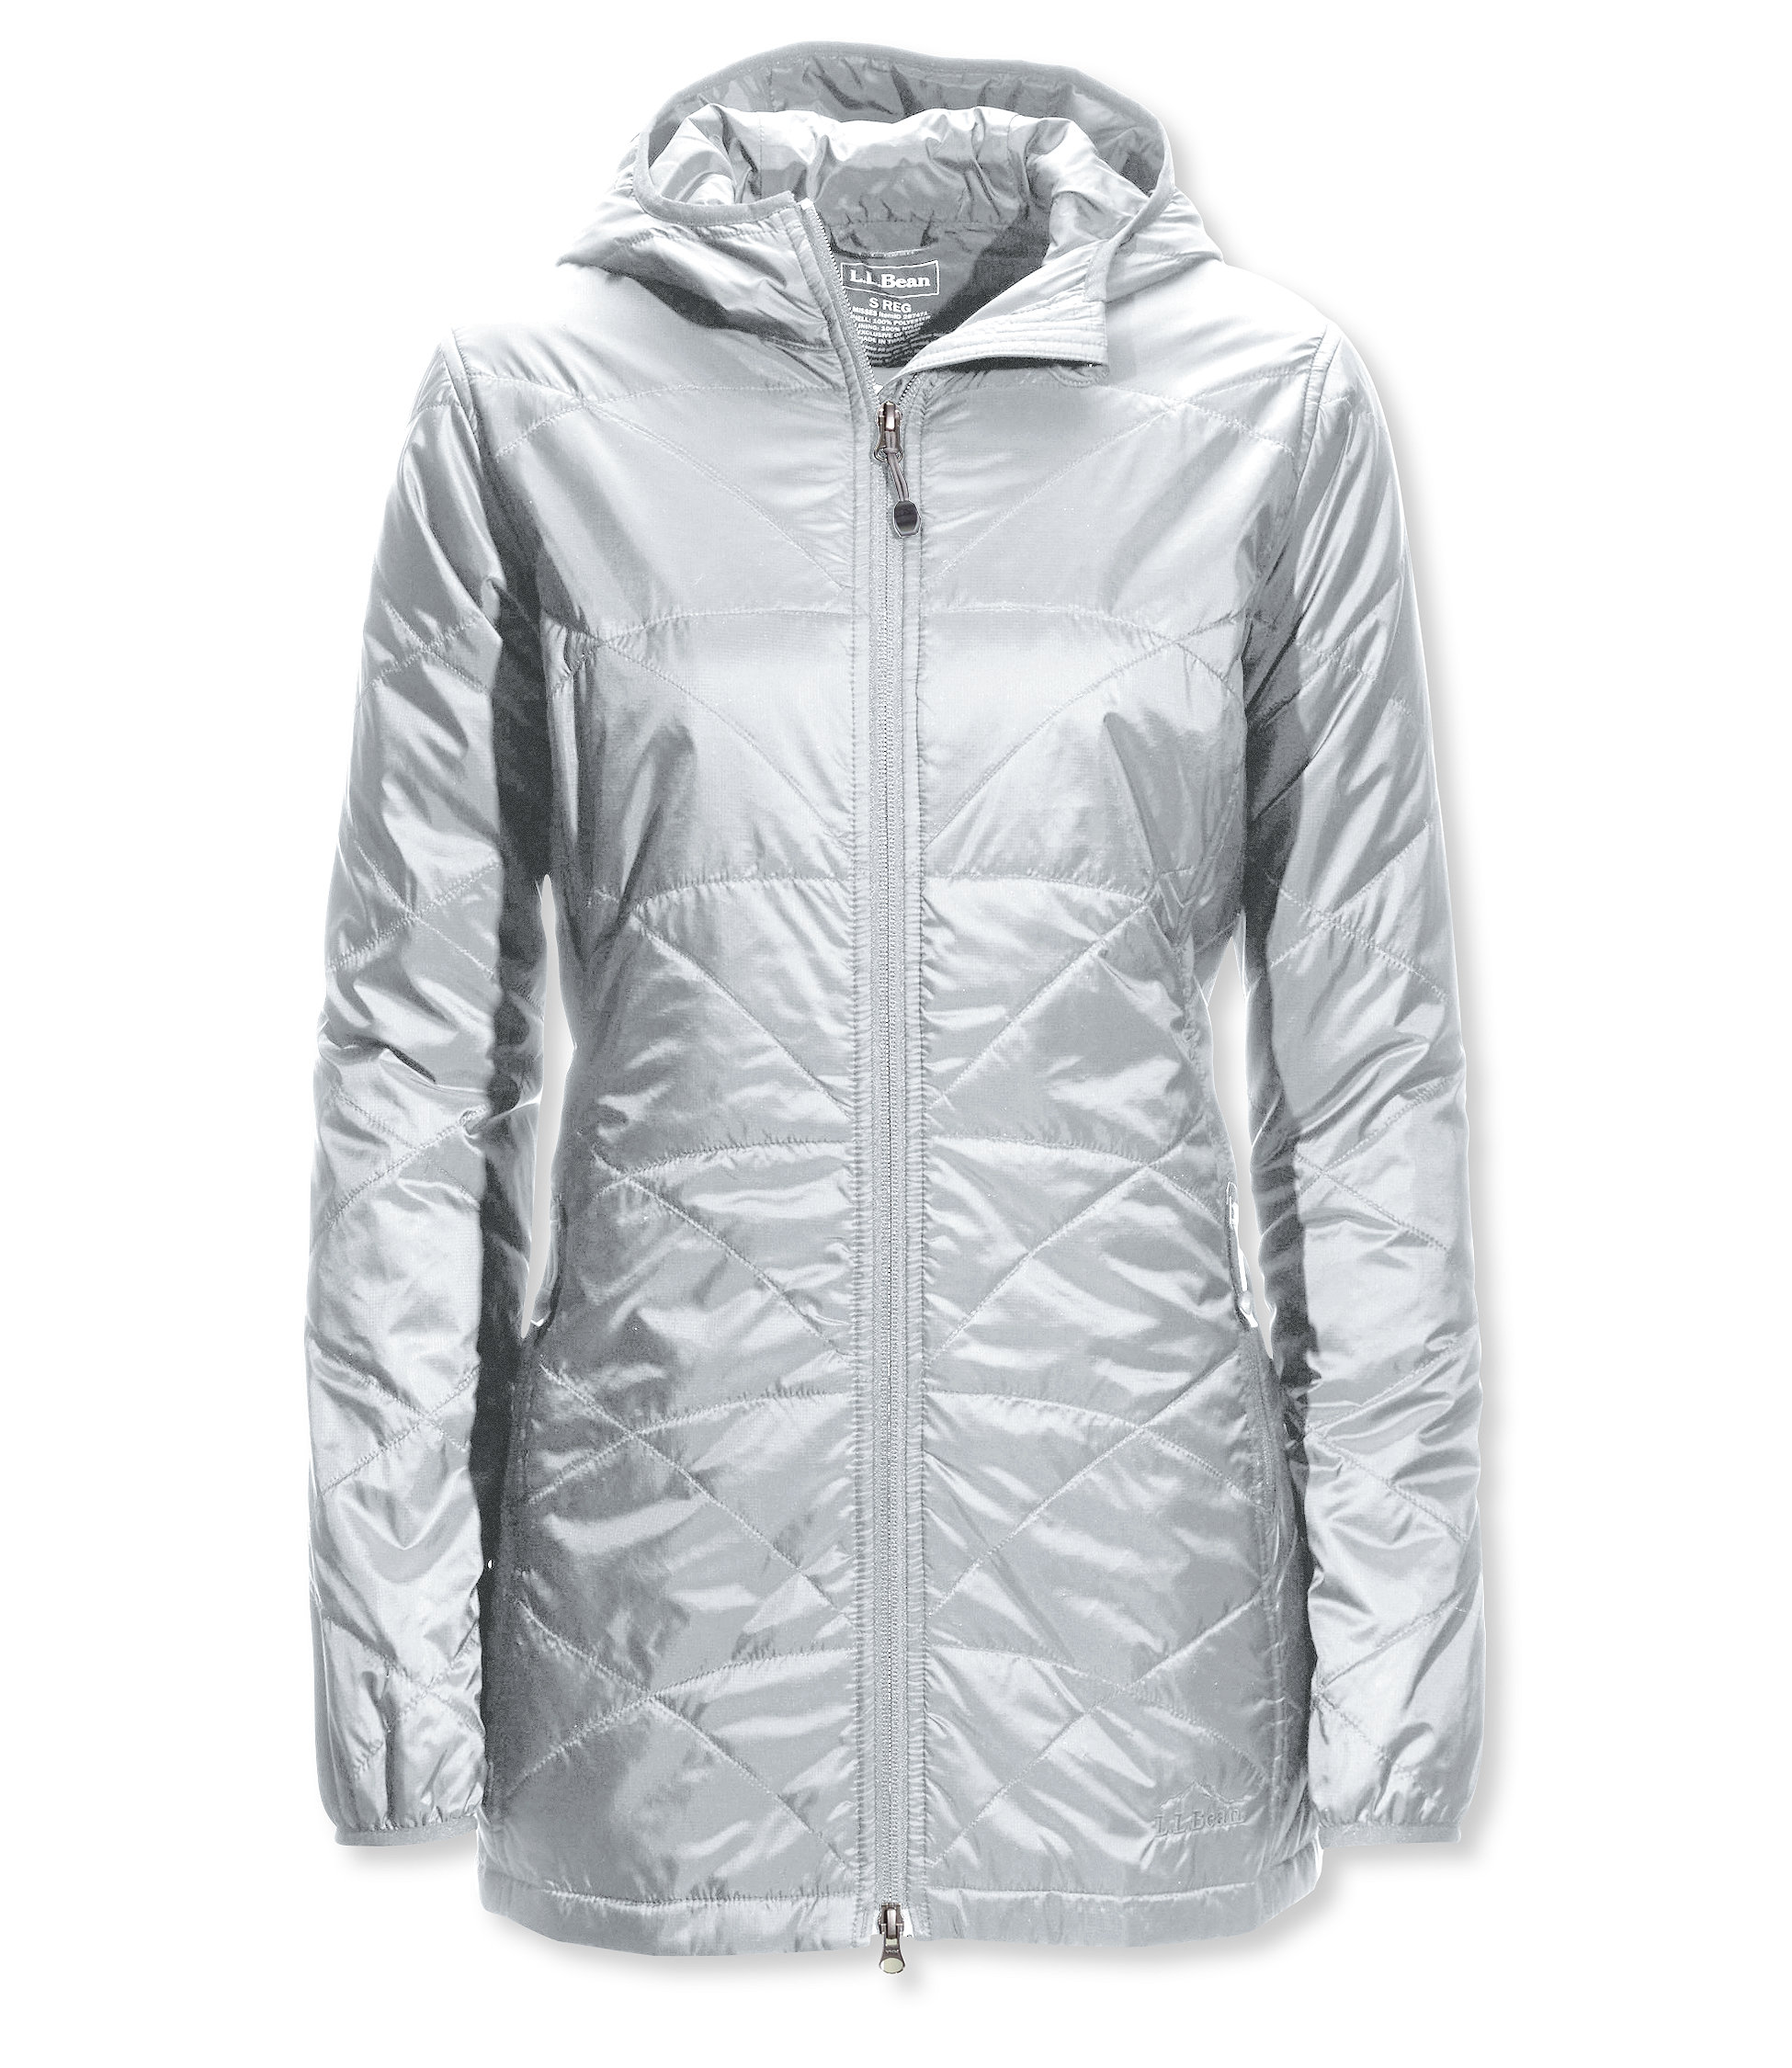 L.L.Bean Primaloft Packaway Coat